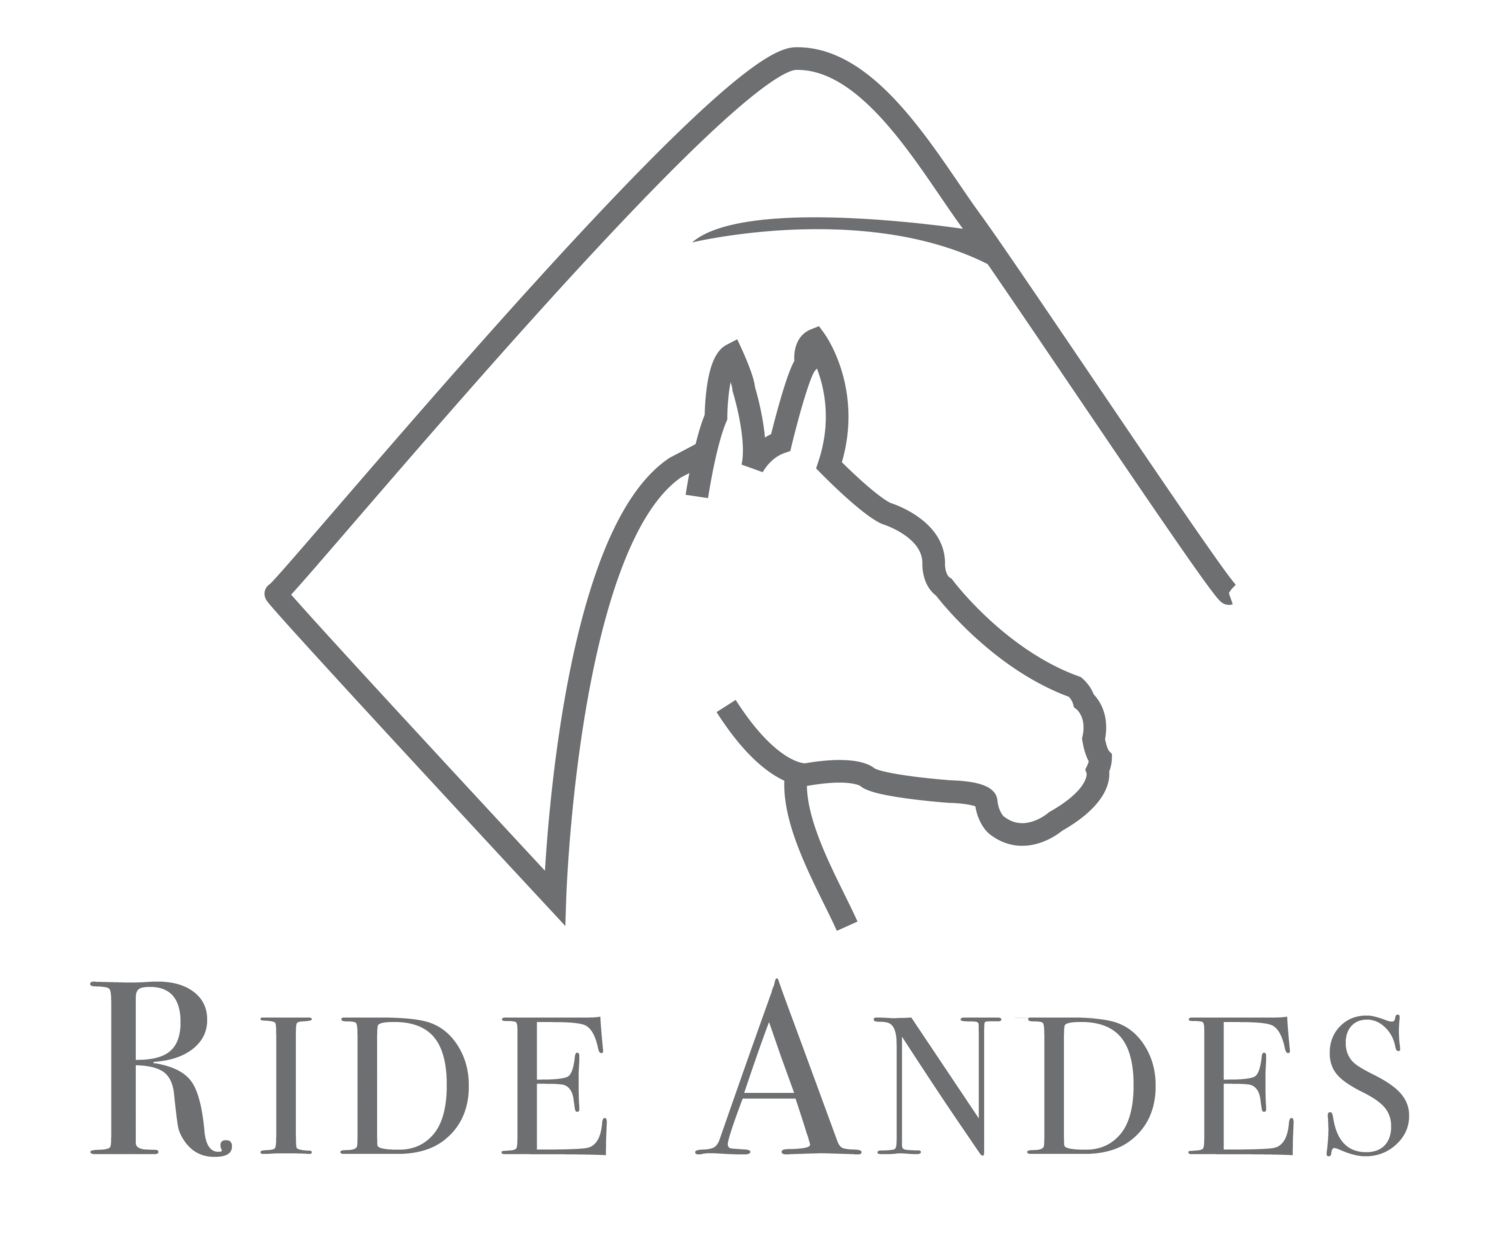 Ride Andes